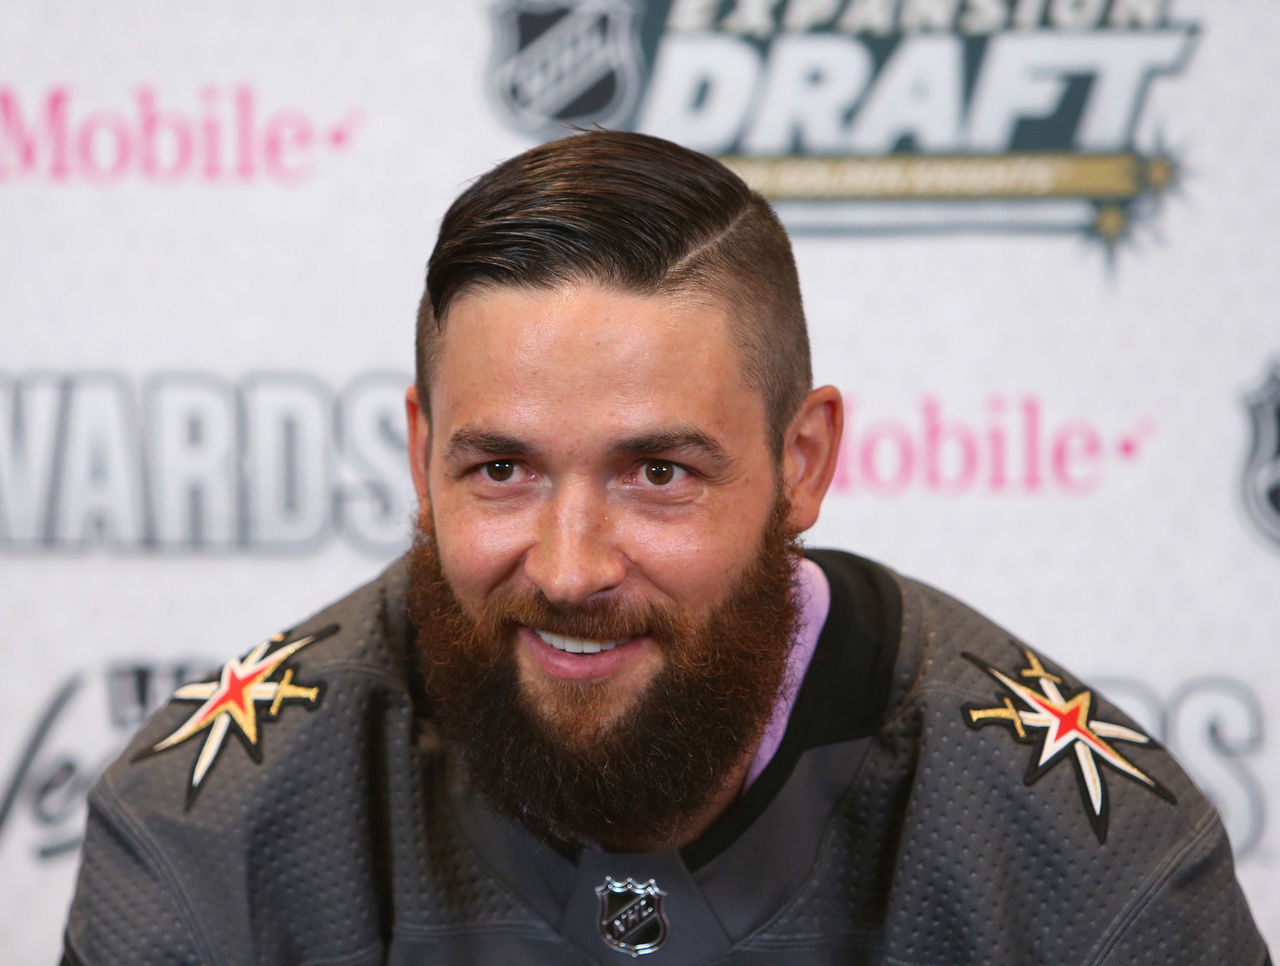 Cropped 2017 06 22t013423z 945026576 nocid rtrmadp 3 nhl nhl awards and expansion draft